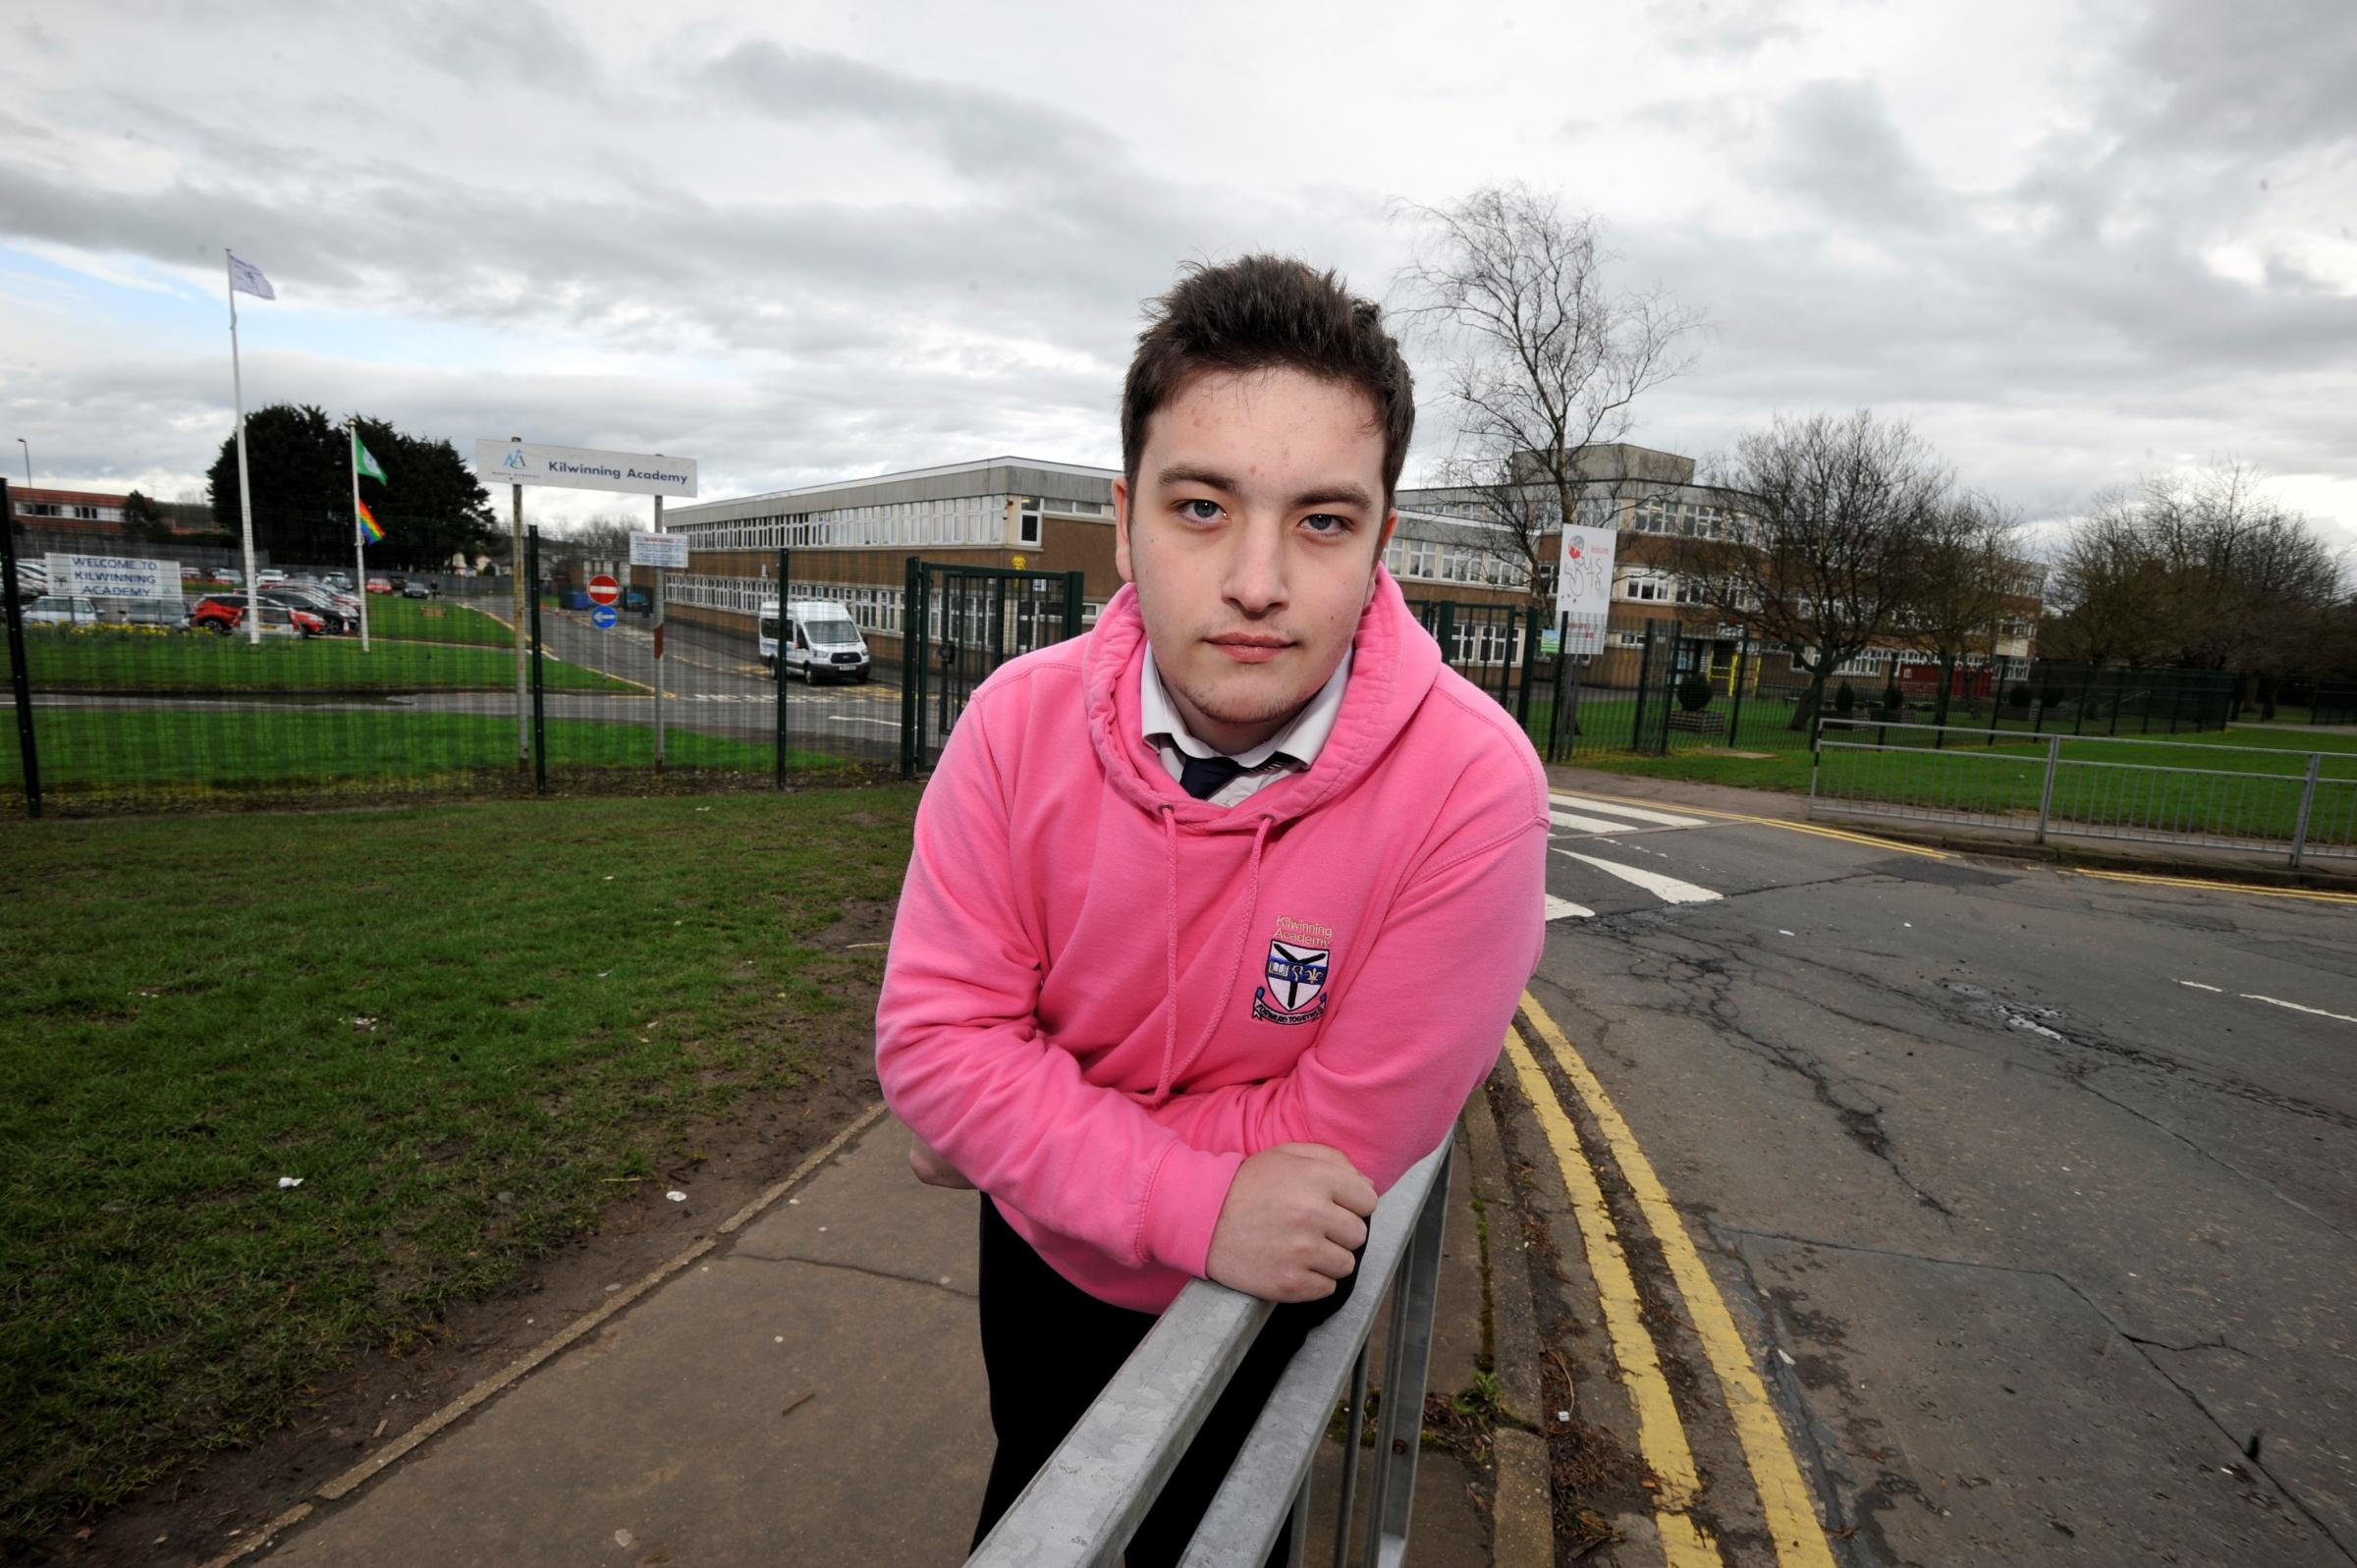 Kilwinning Academy pupil blasts council after 'gay rights' online search blocked